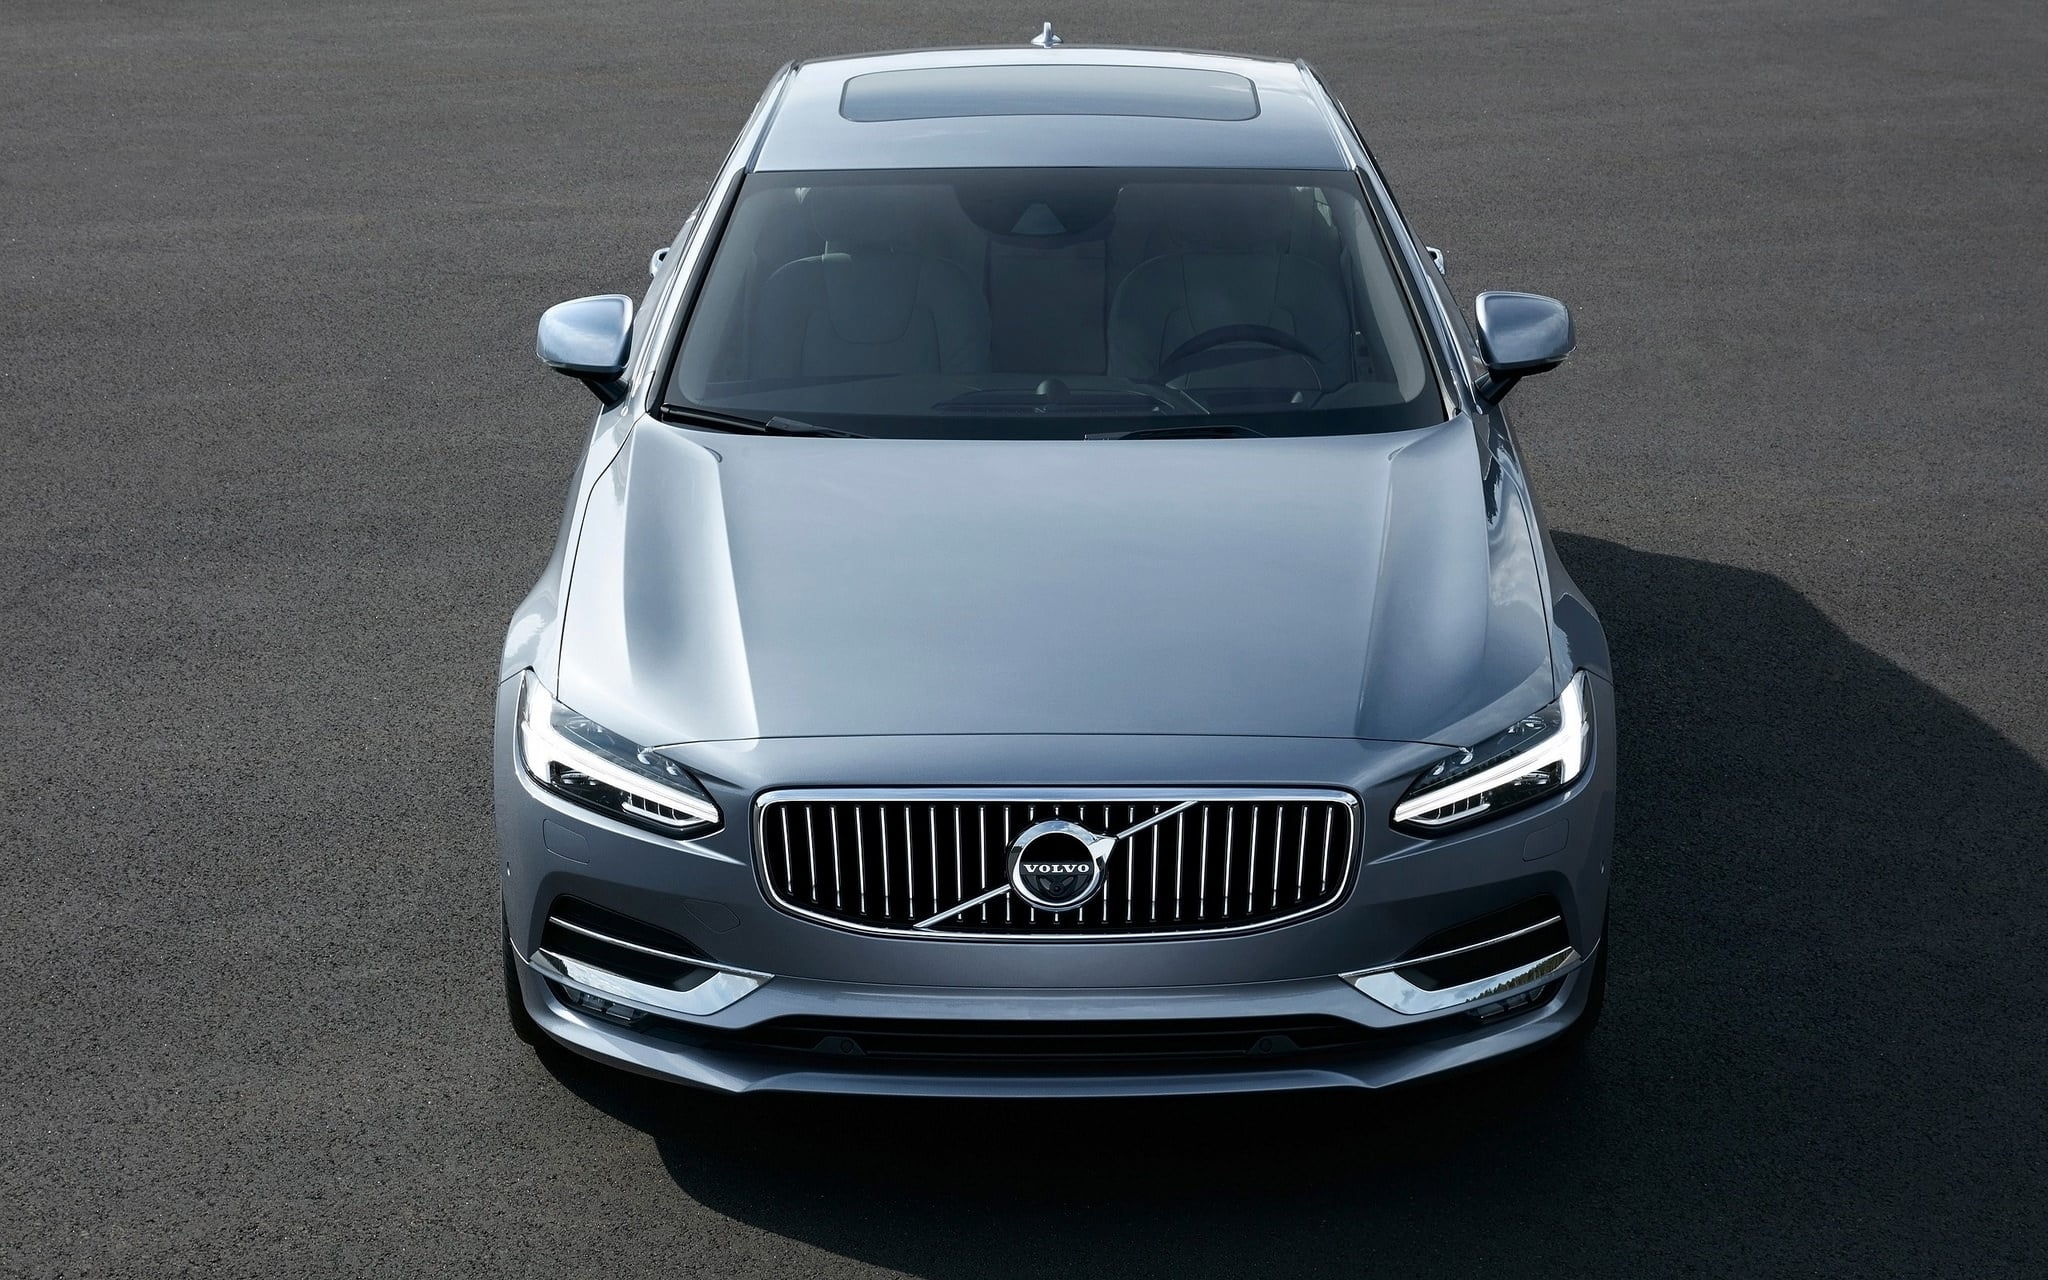 2016 Volvo S90 HD wallpapers